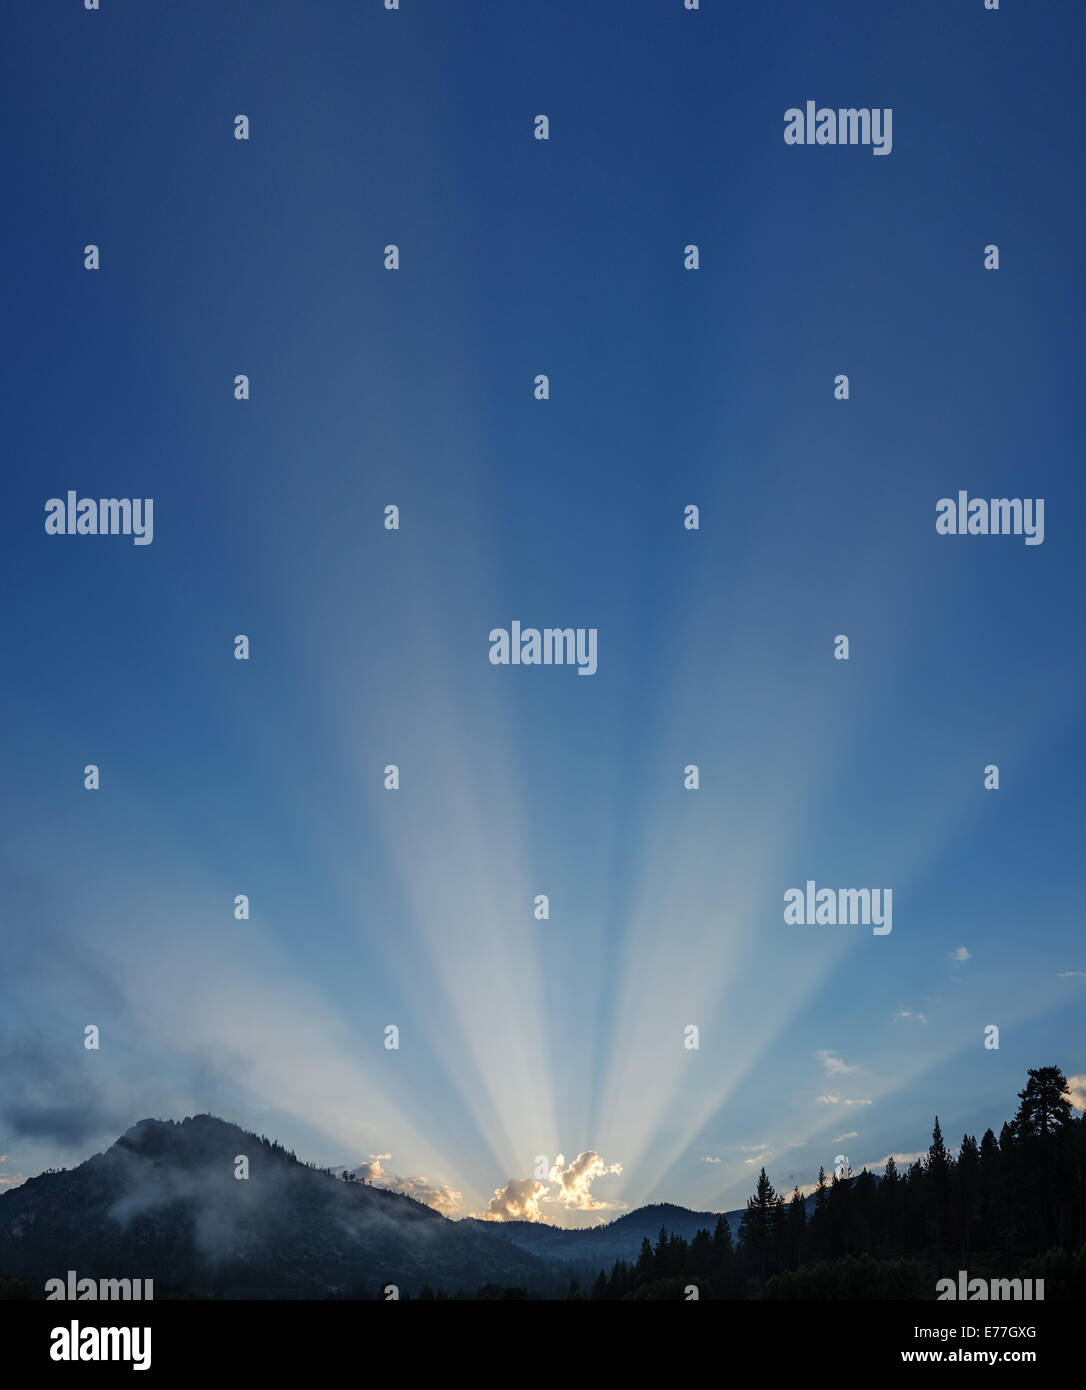 Soleil brillera à travers le ciel au-dessus de la Sierra Nevada Photo Stock